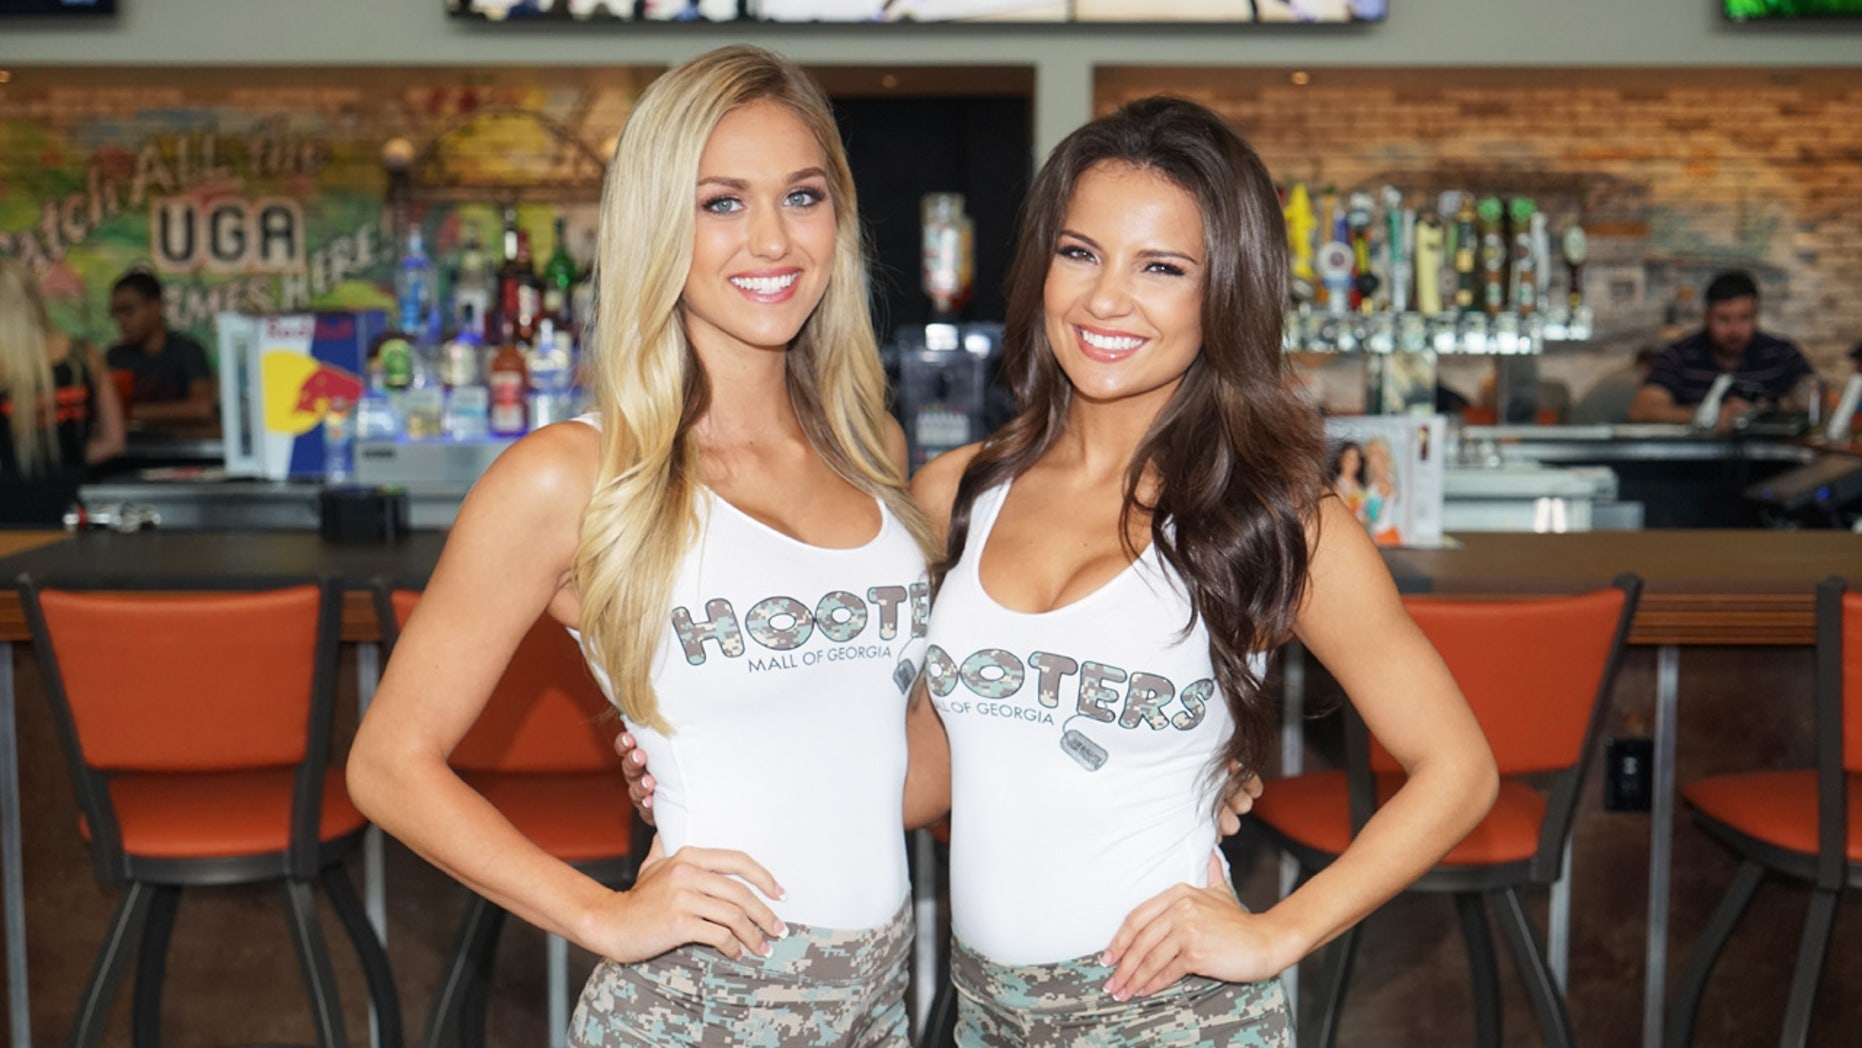 The world famous wing chain is offering free food for military personnel this Veteran's Day.